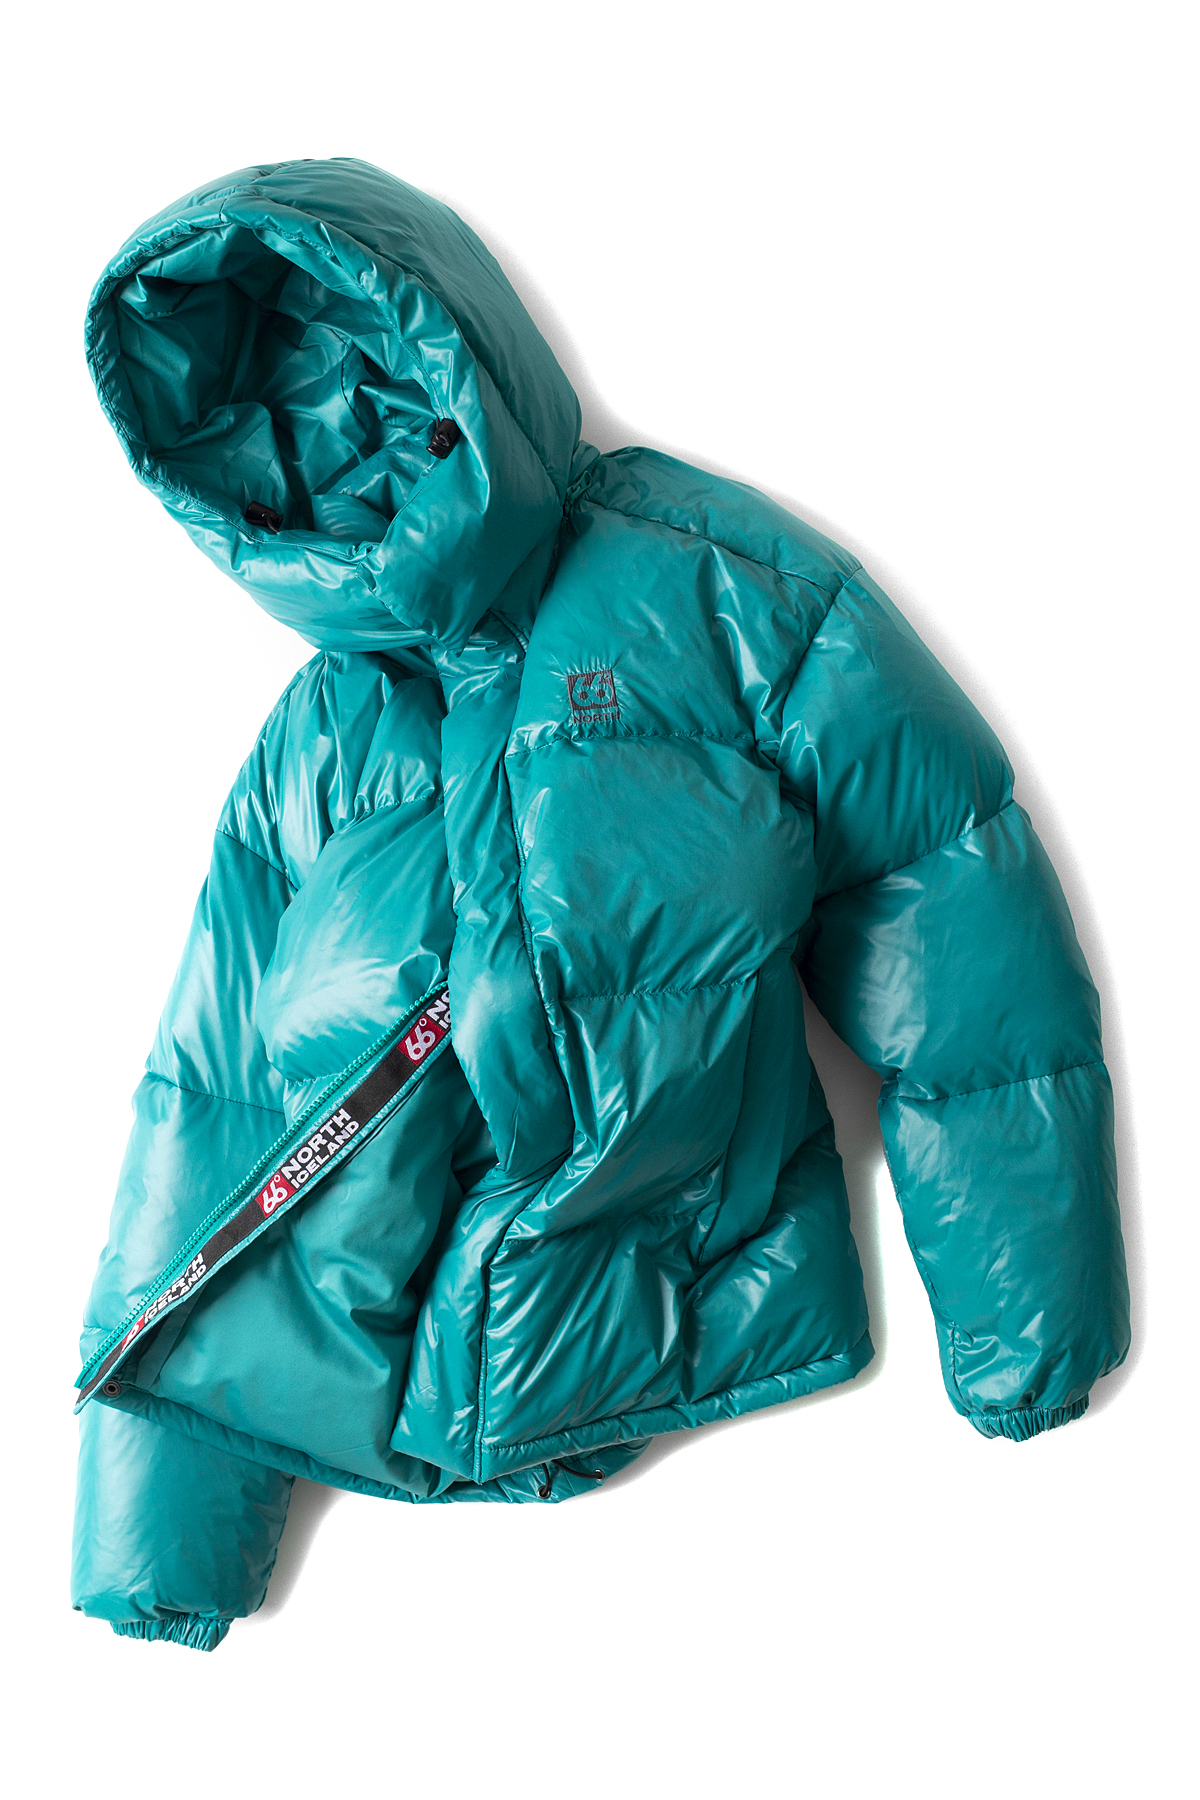 66North : Dyngja Down Jacket (Green)